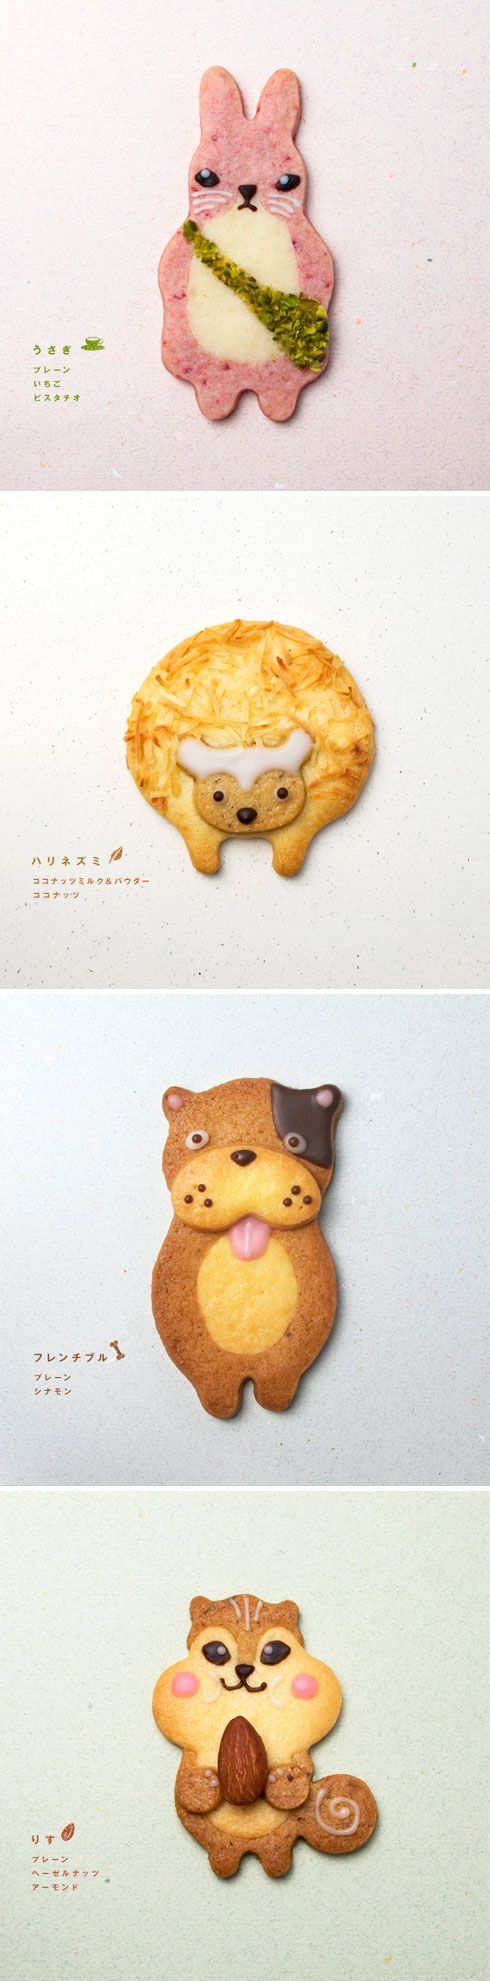 adorable cookies by Henteco